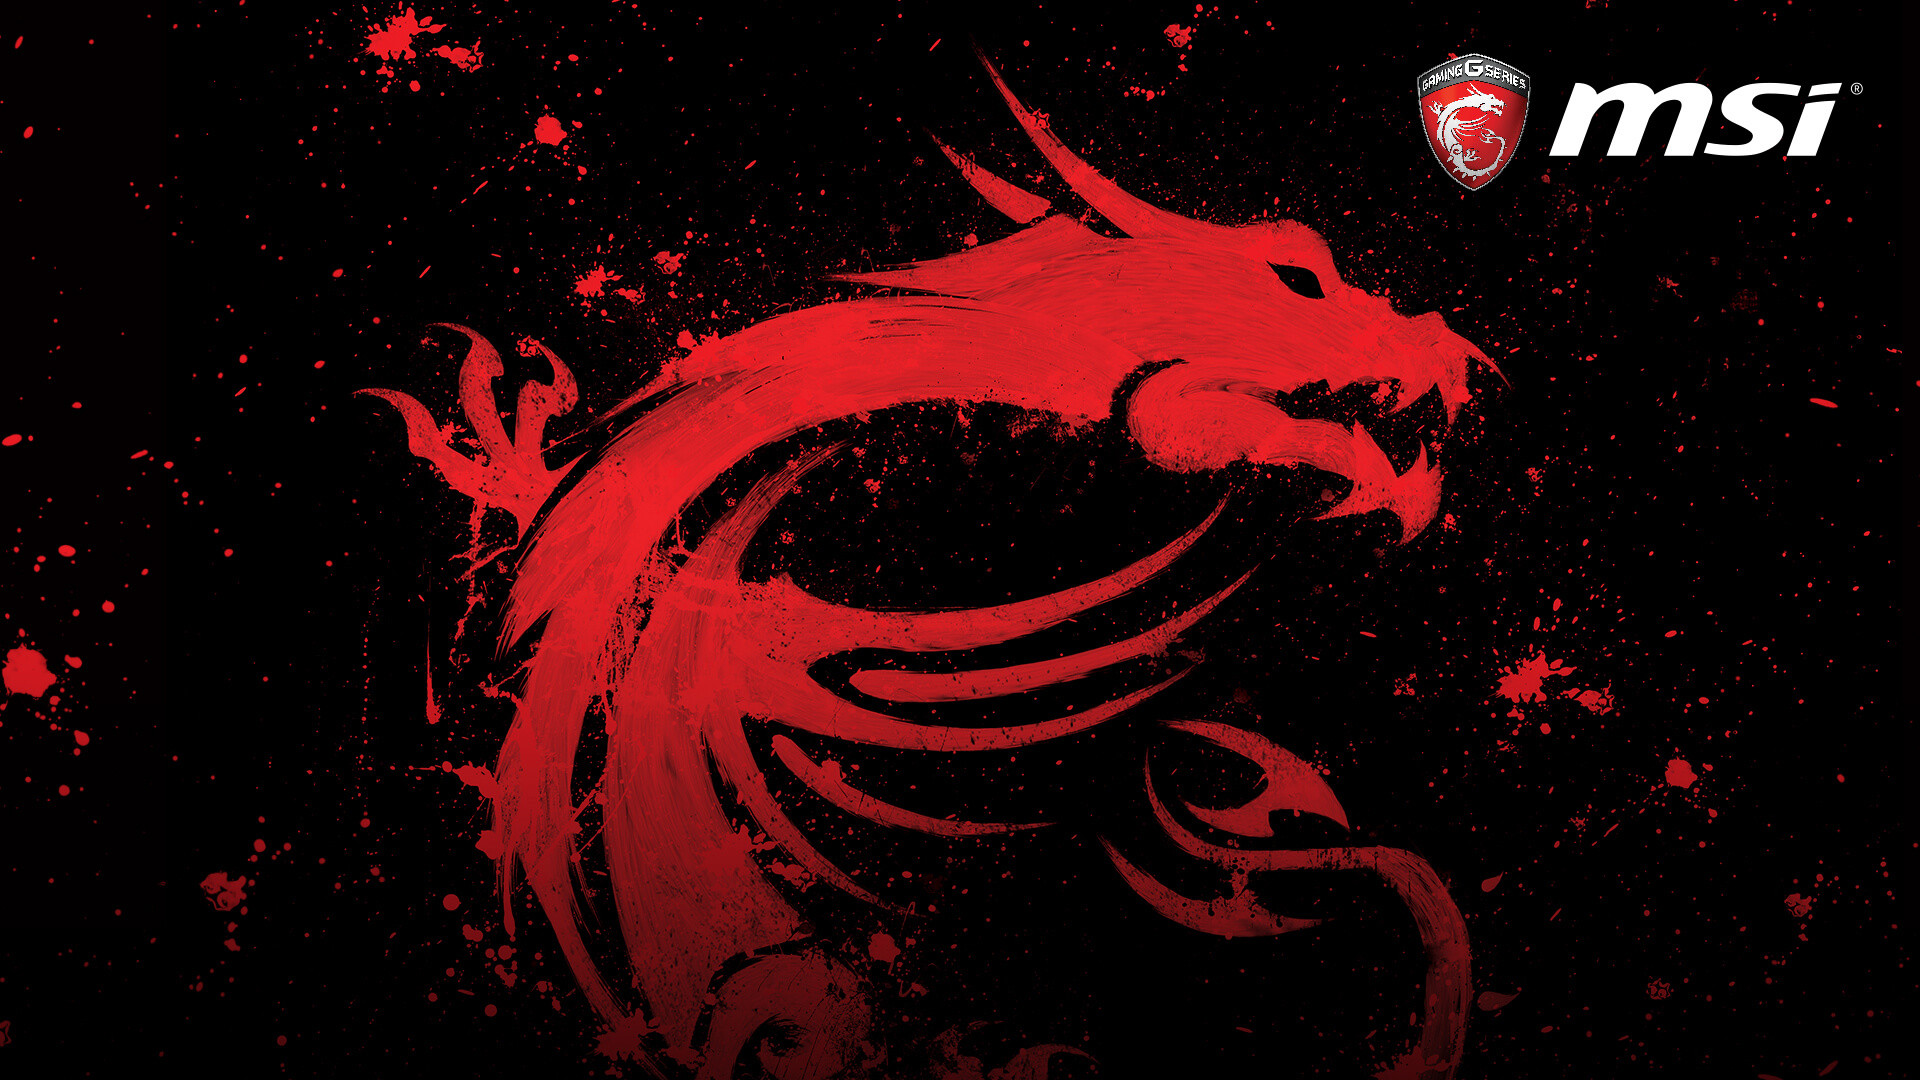 Msi wallpaper 4k 69 images 1920x1080 msi gaming series dragon wallpaper by ricardoxavier on deviantart voltagebd Images